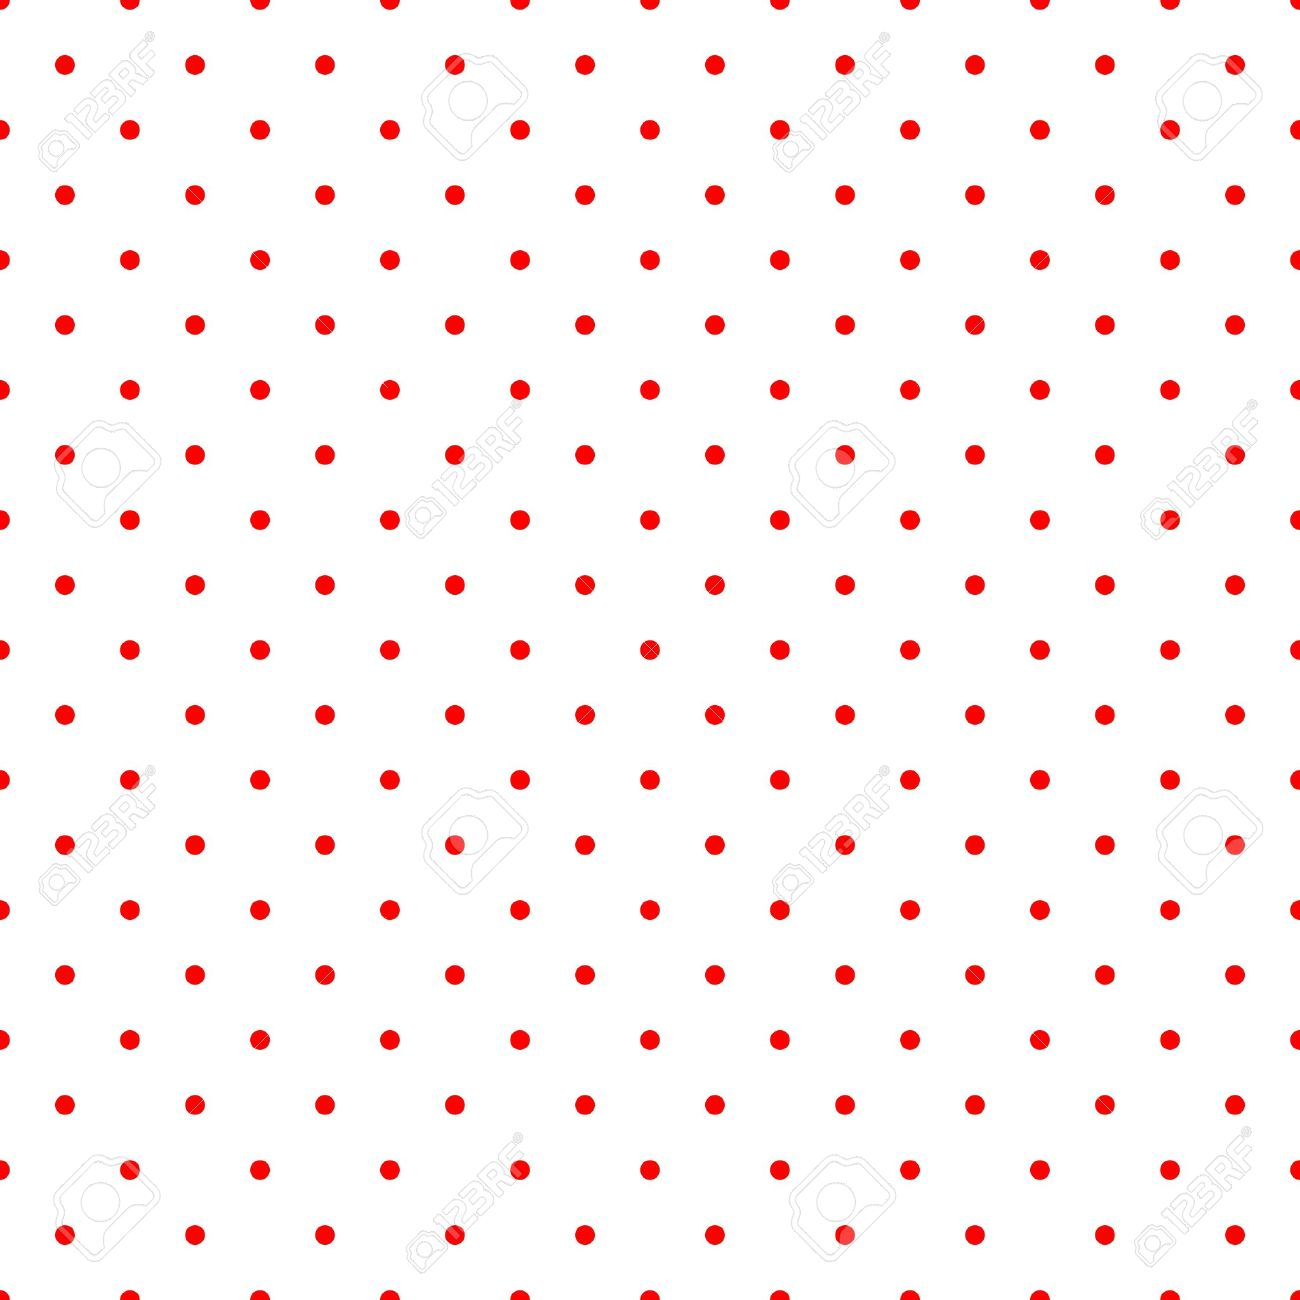 Retro Vector Tile Pattern With Small Red Polka Dots On White Background For Decoration Wallpaper Stock